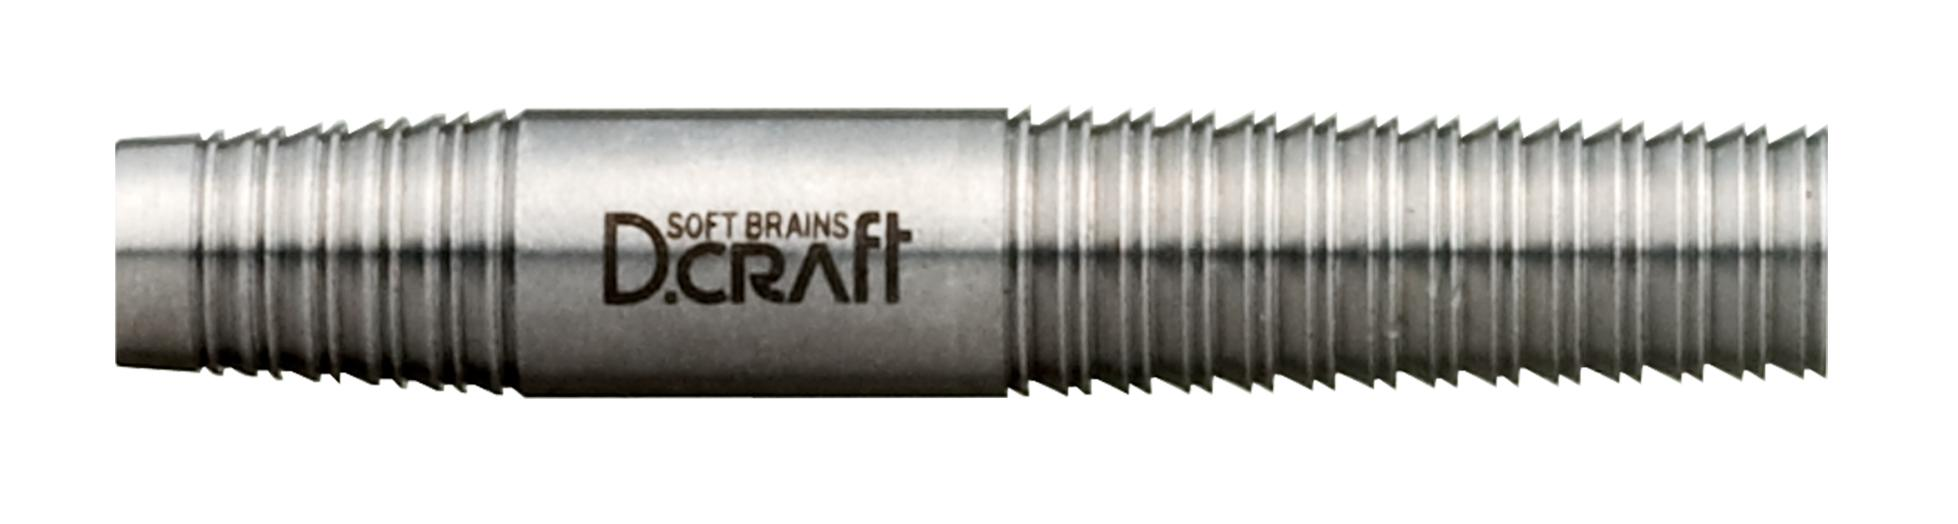 D Craft Dart - 70% Tungsten - BENIBANA